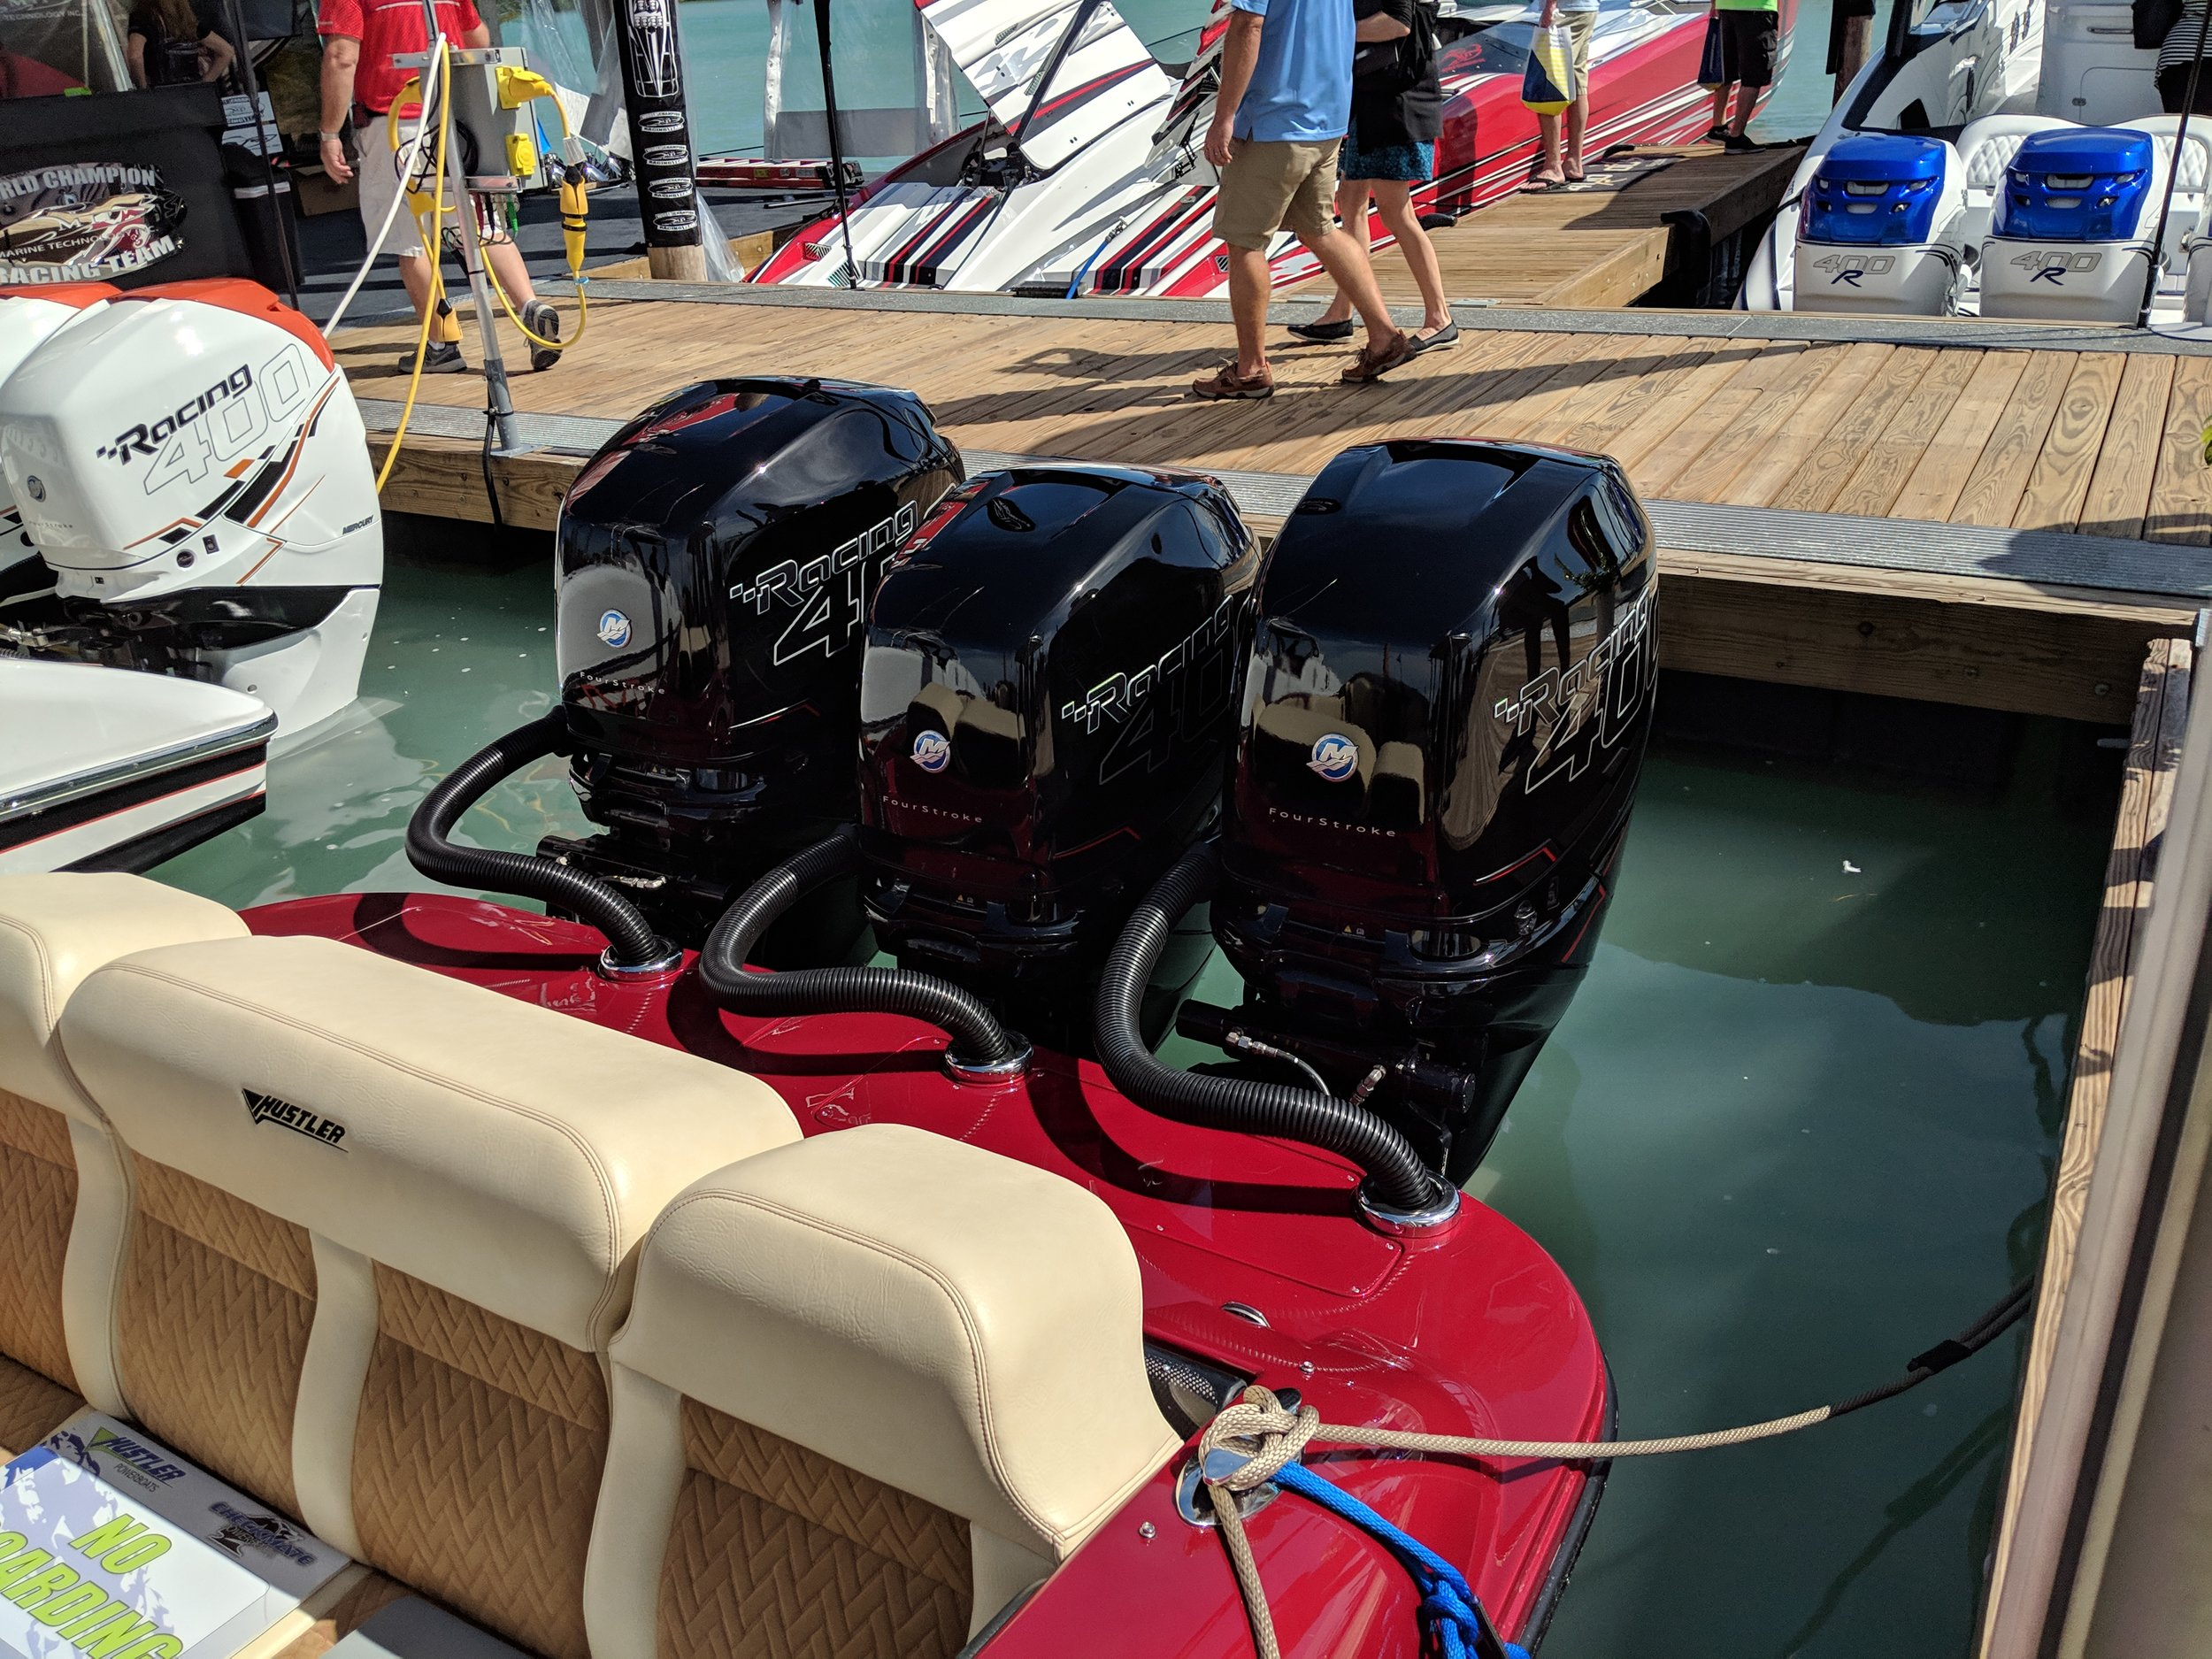 The Most Powerful Outboards: The Biggest Engines from Mercury